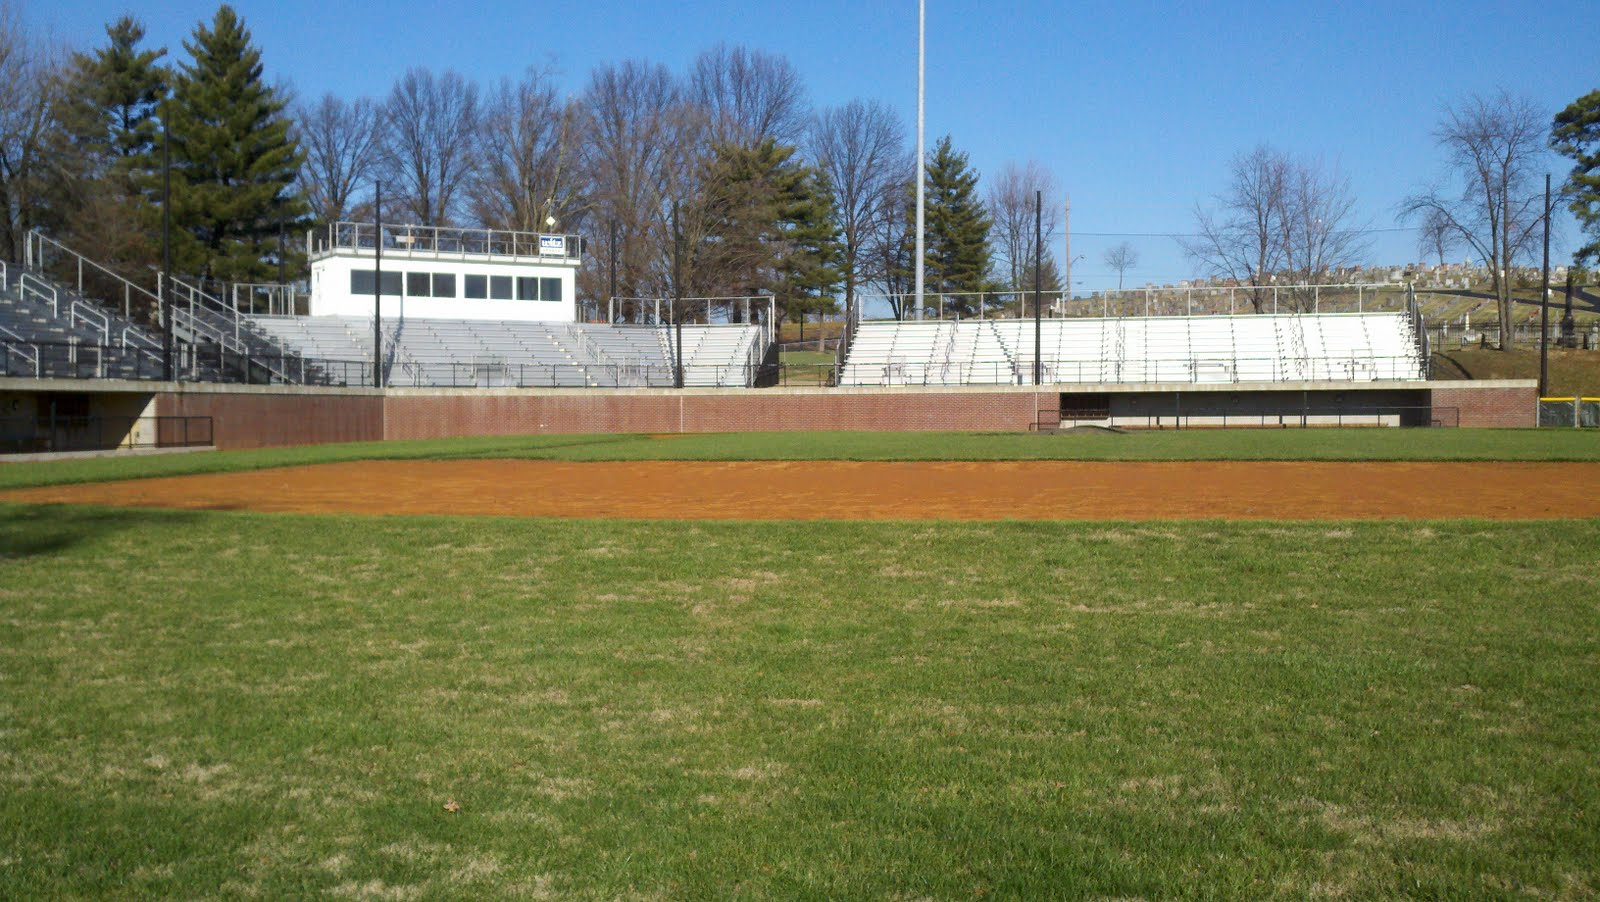 Another Facility Is The Jasper Baseball Fieldhouse Located Down Right Field Line Has Indoor Batting Cages Locker Rooms Restrooms